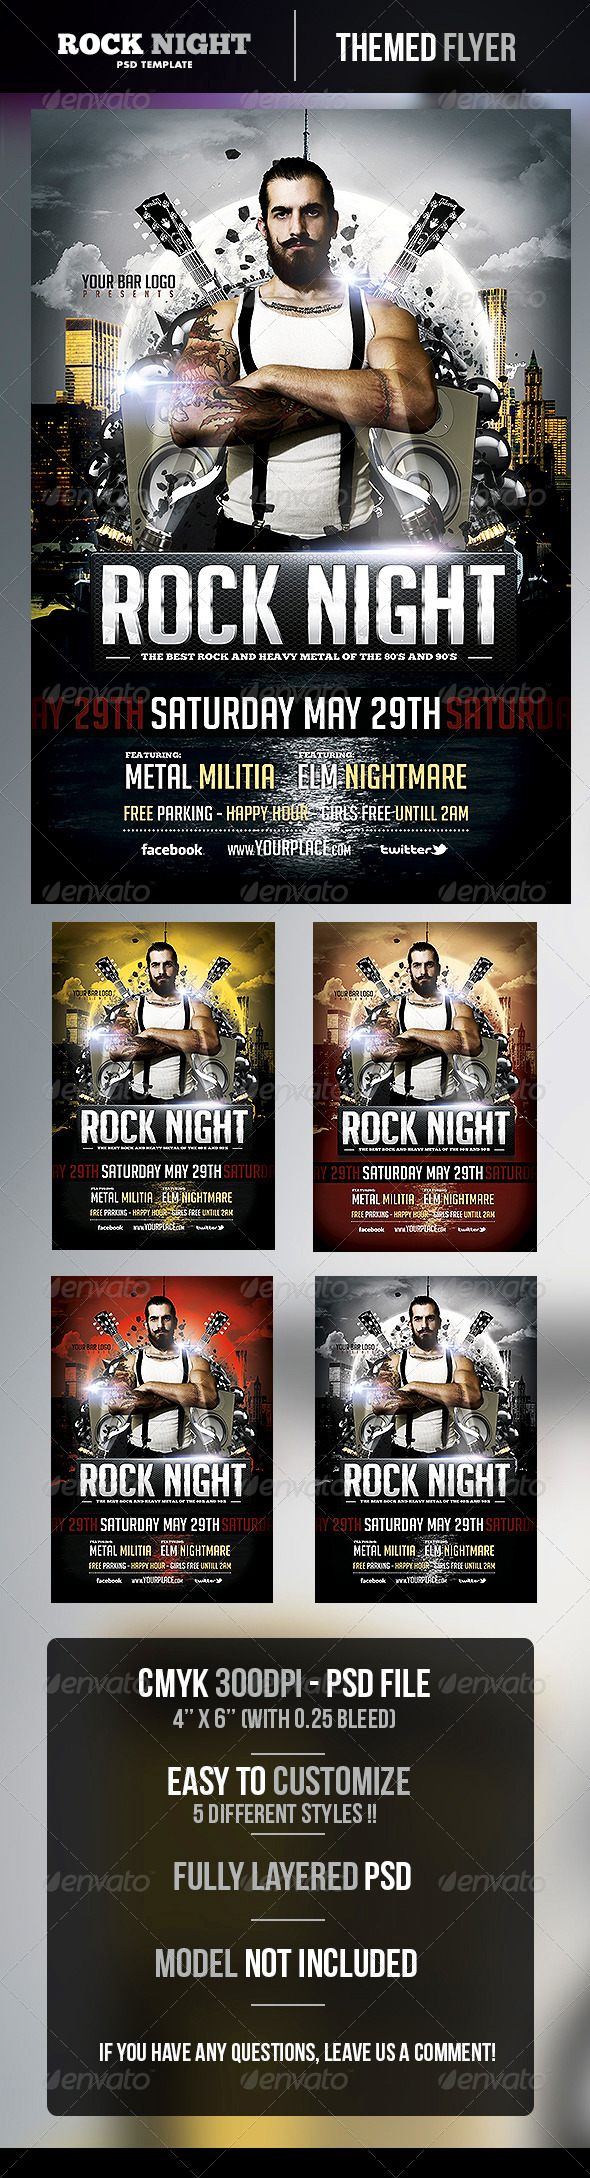 Rock Night Flyer Template - Concerts Events